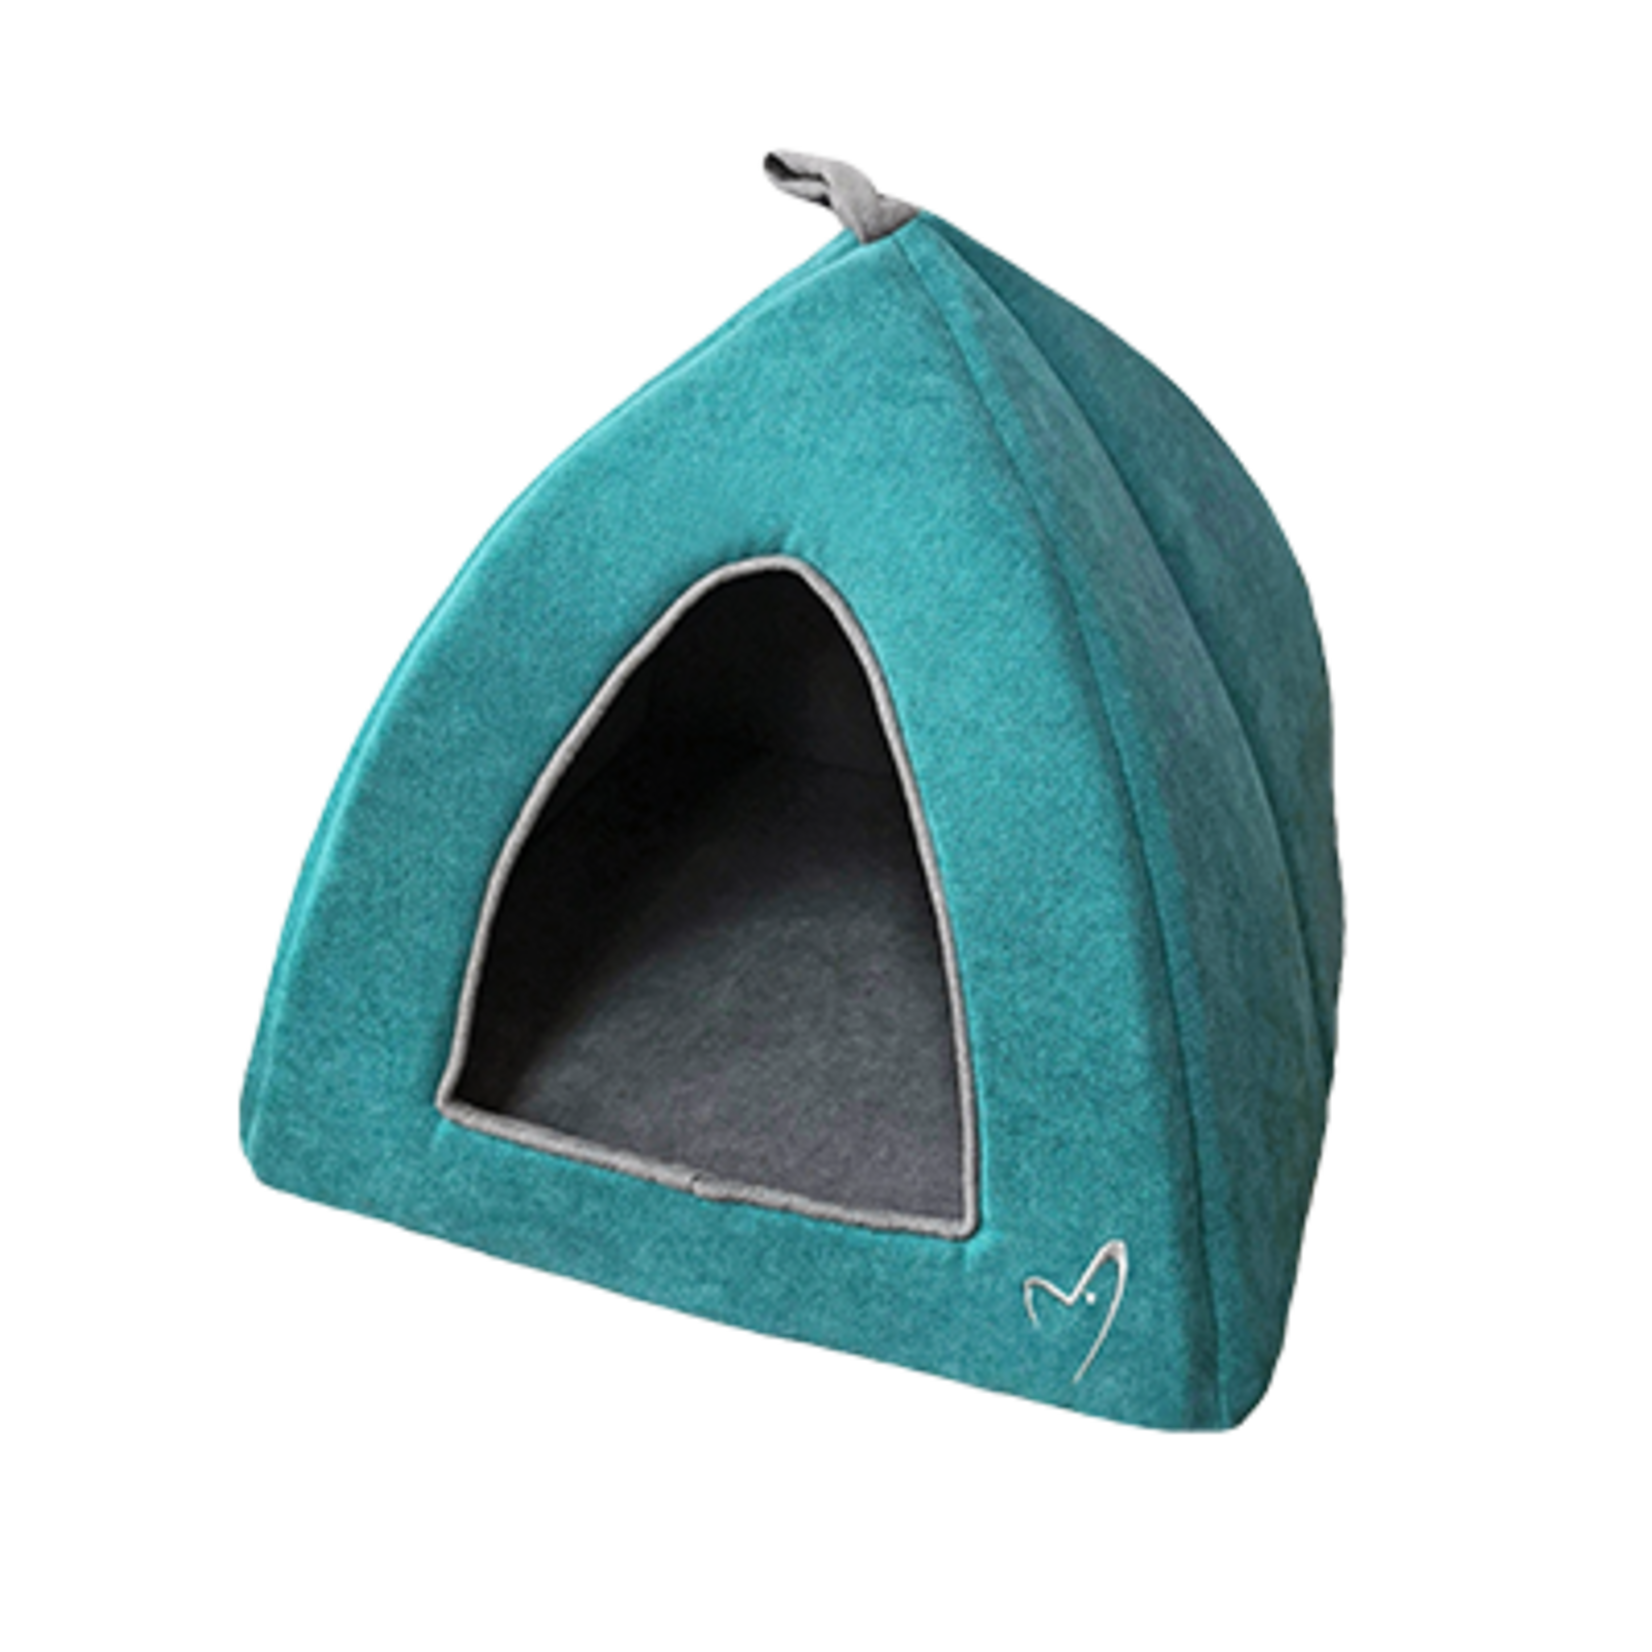 Gor Pets Camden Pyramid Cat Bed 40x40x40cm in Teal***